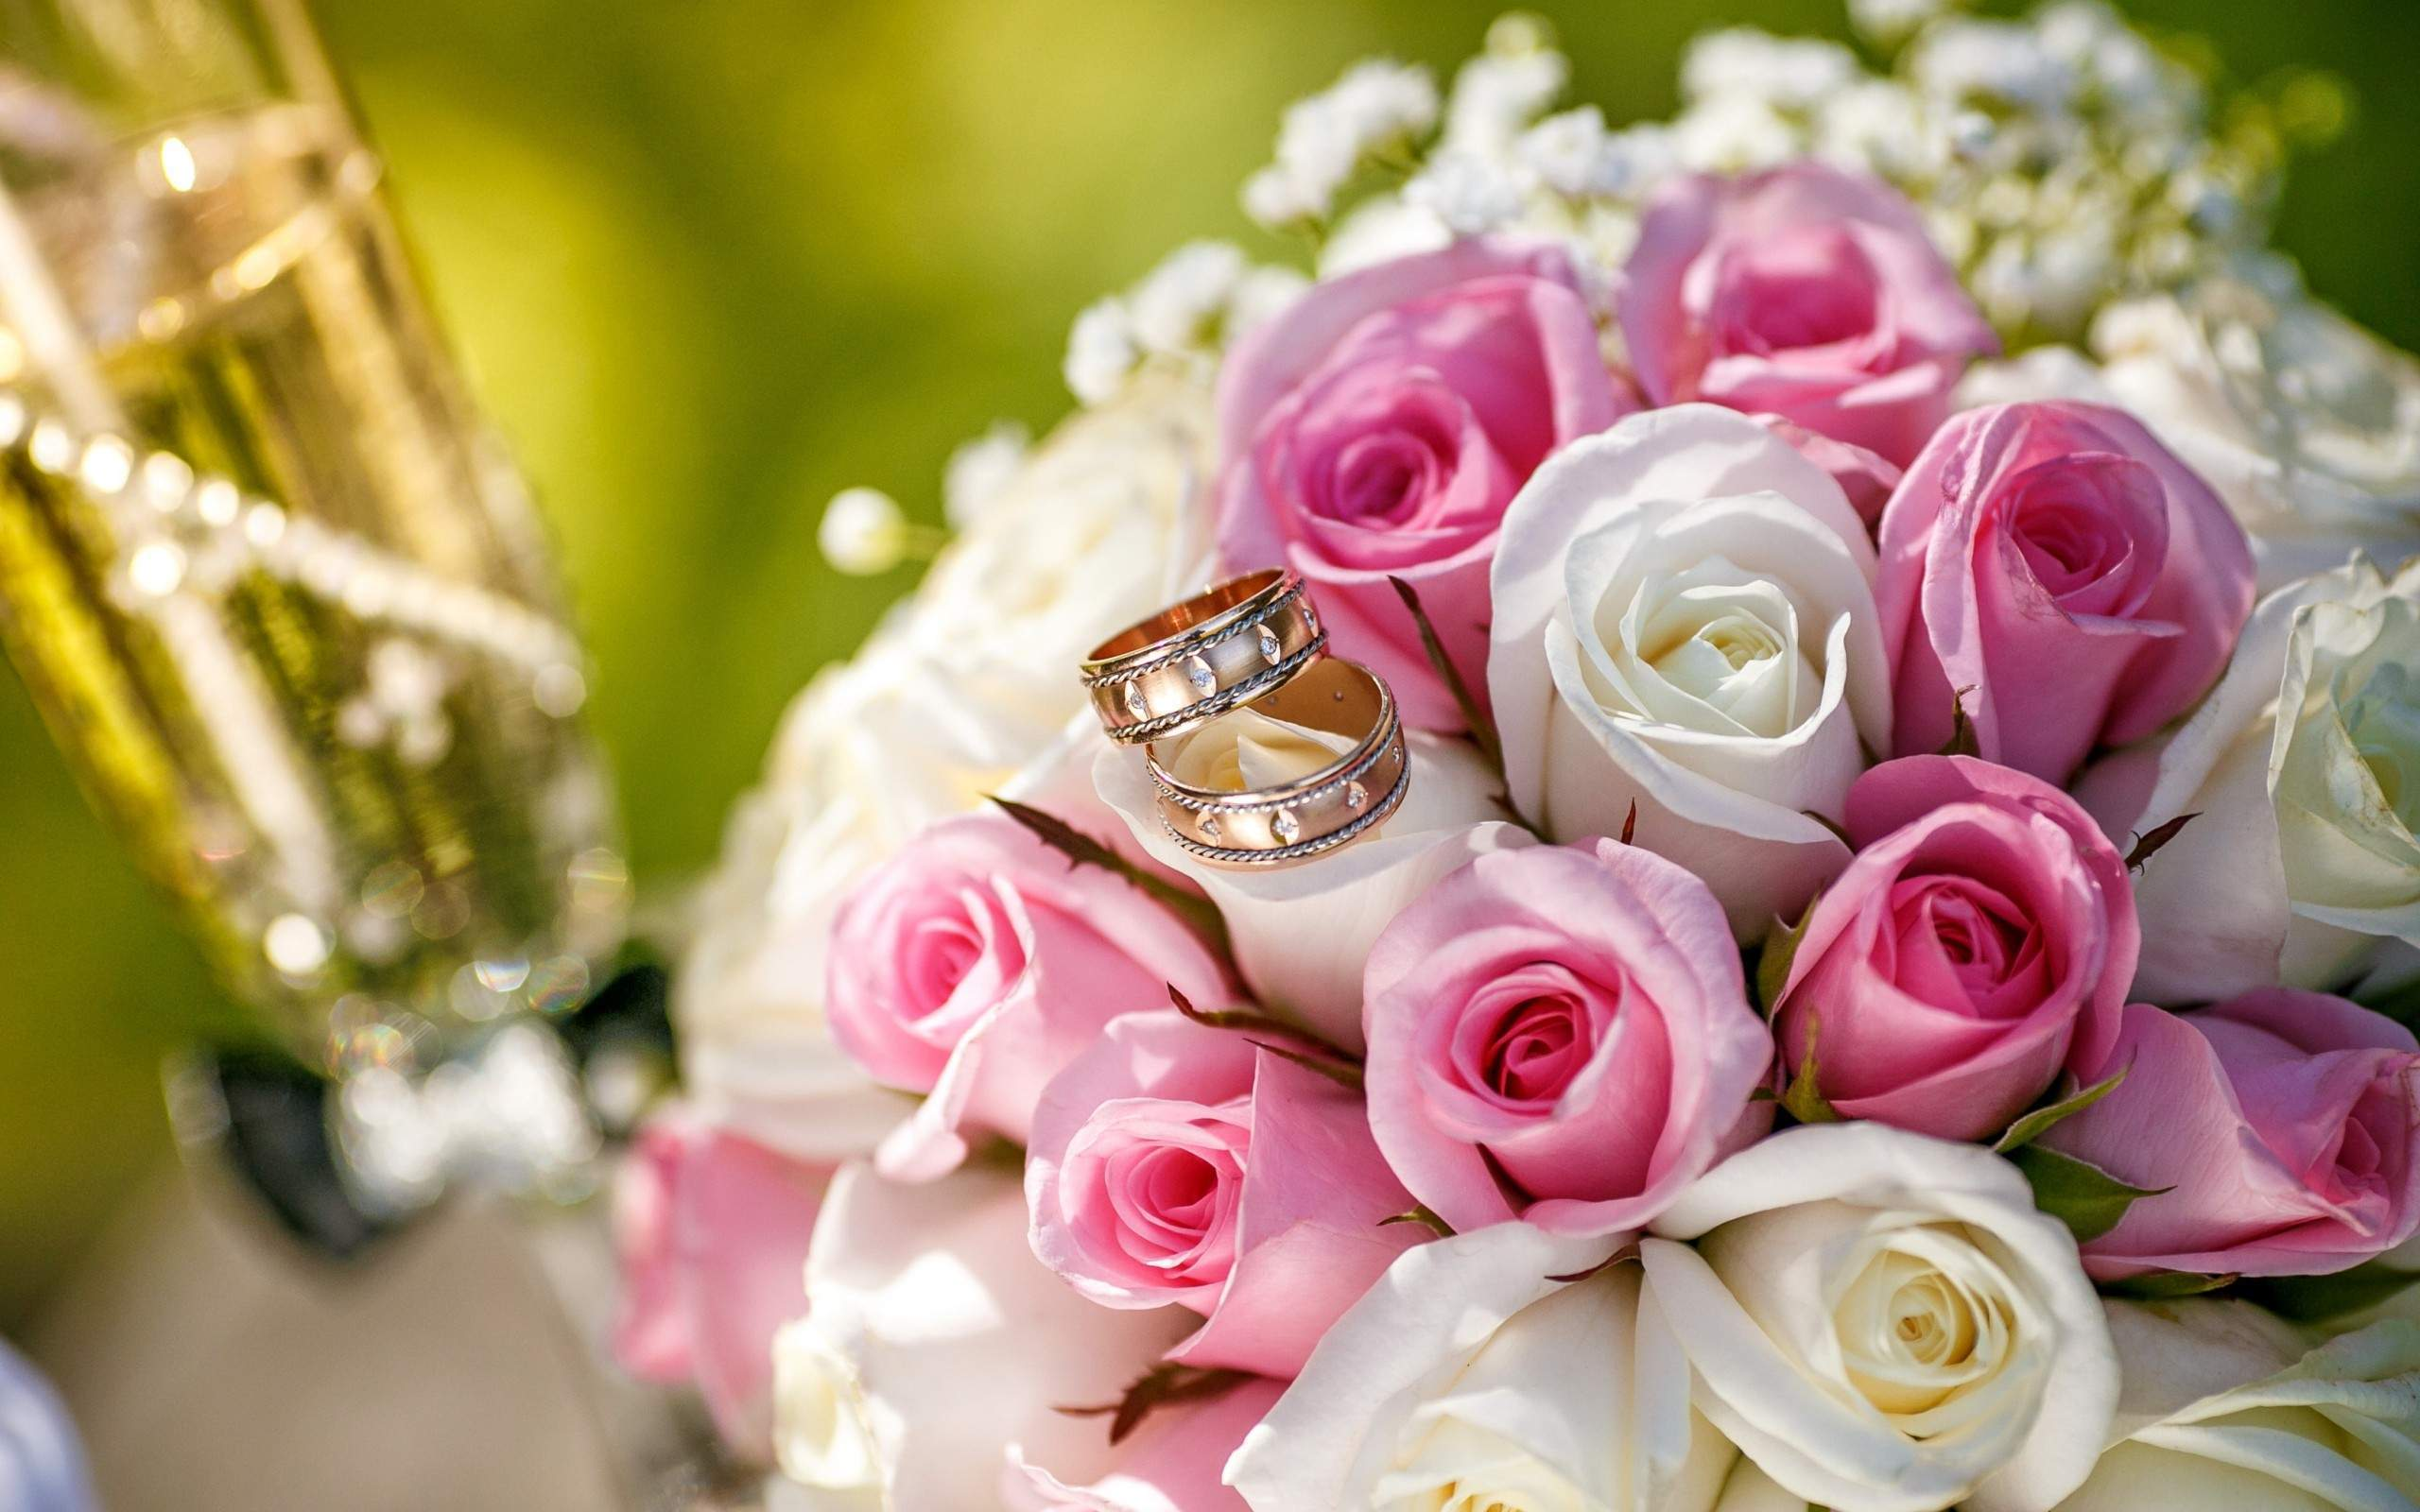 wedding ring with bunch of rose flowers proposal love photos